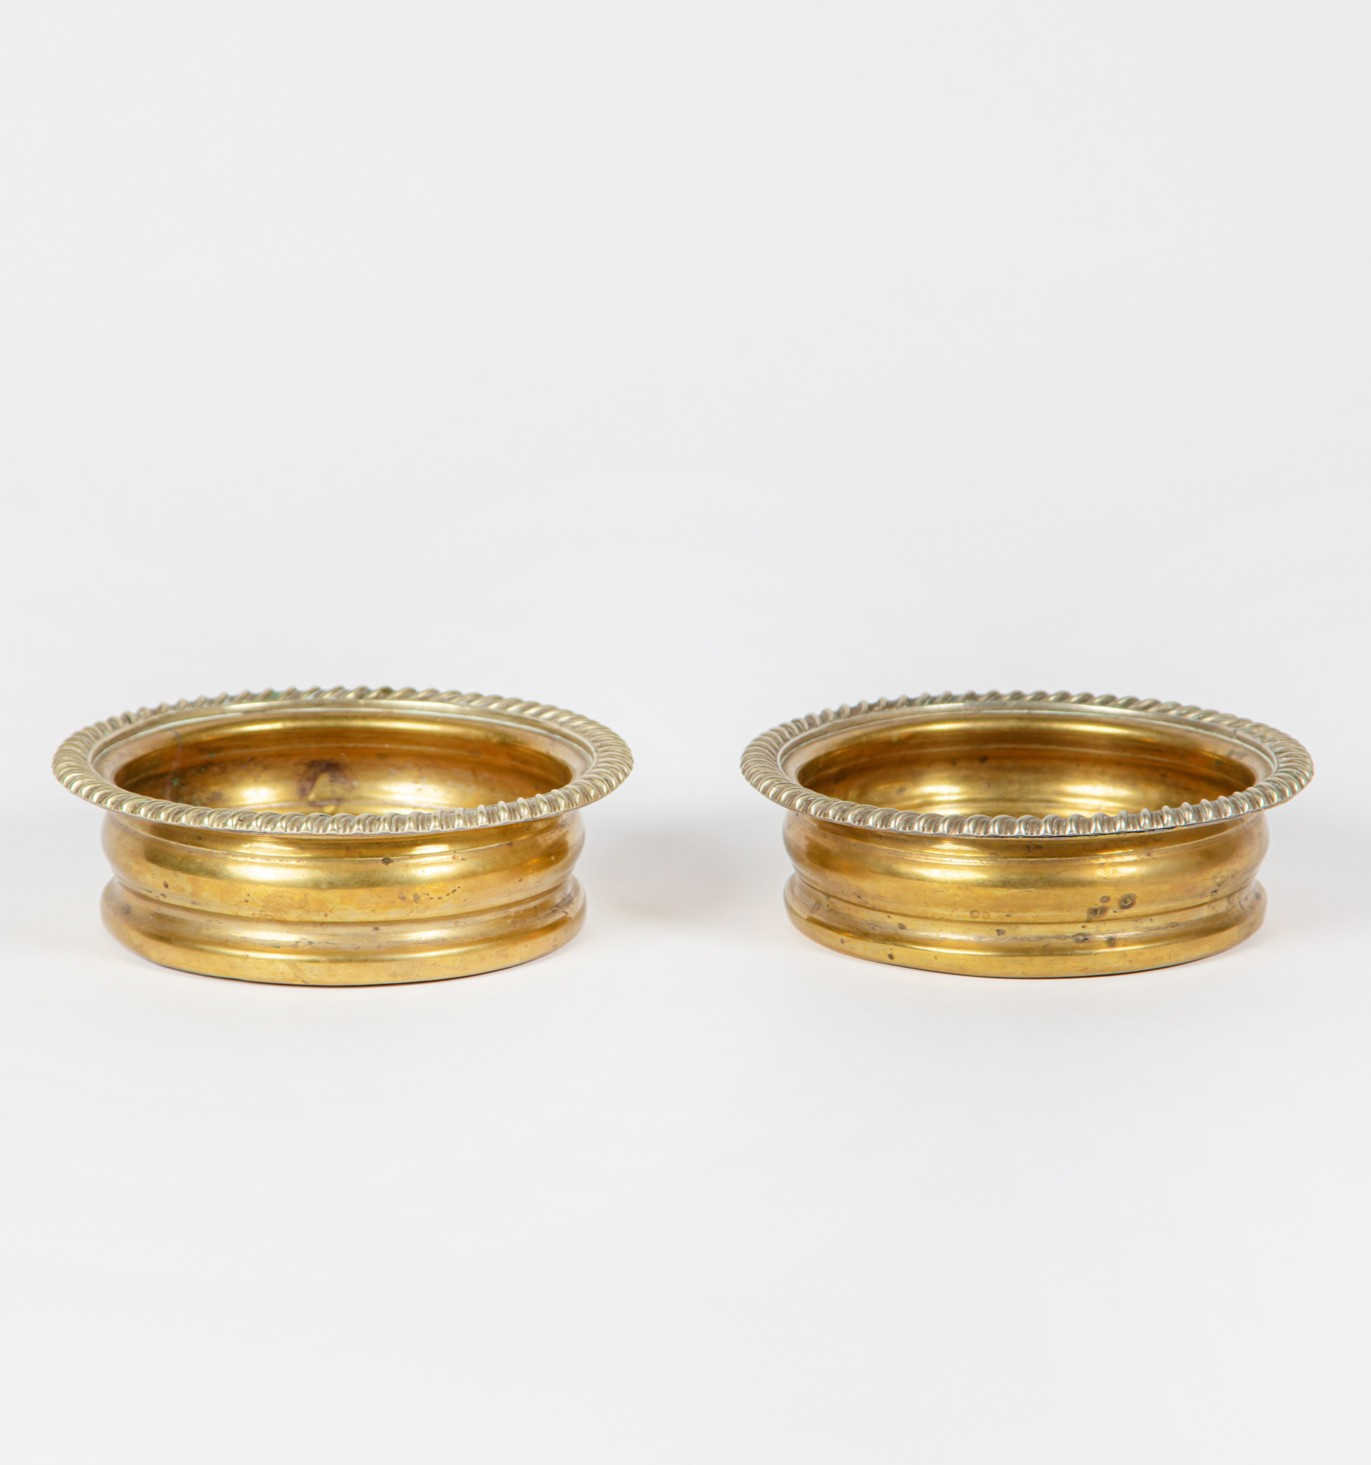 A pair of brass and wooden wine bottle coasters, 19th century